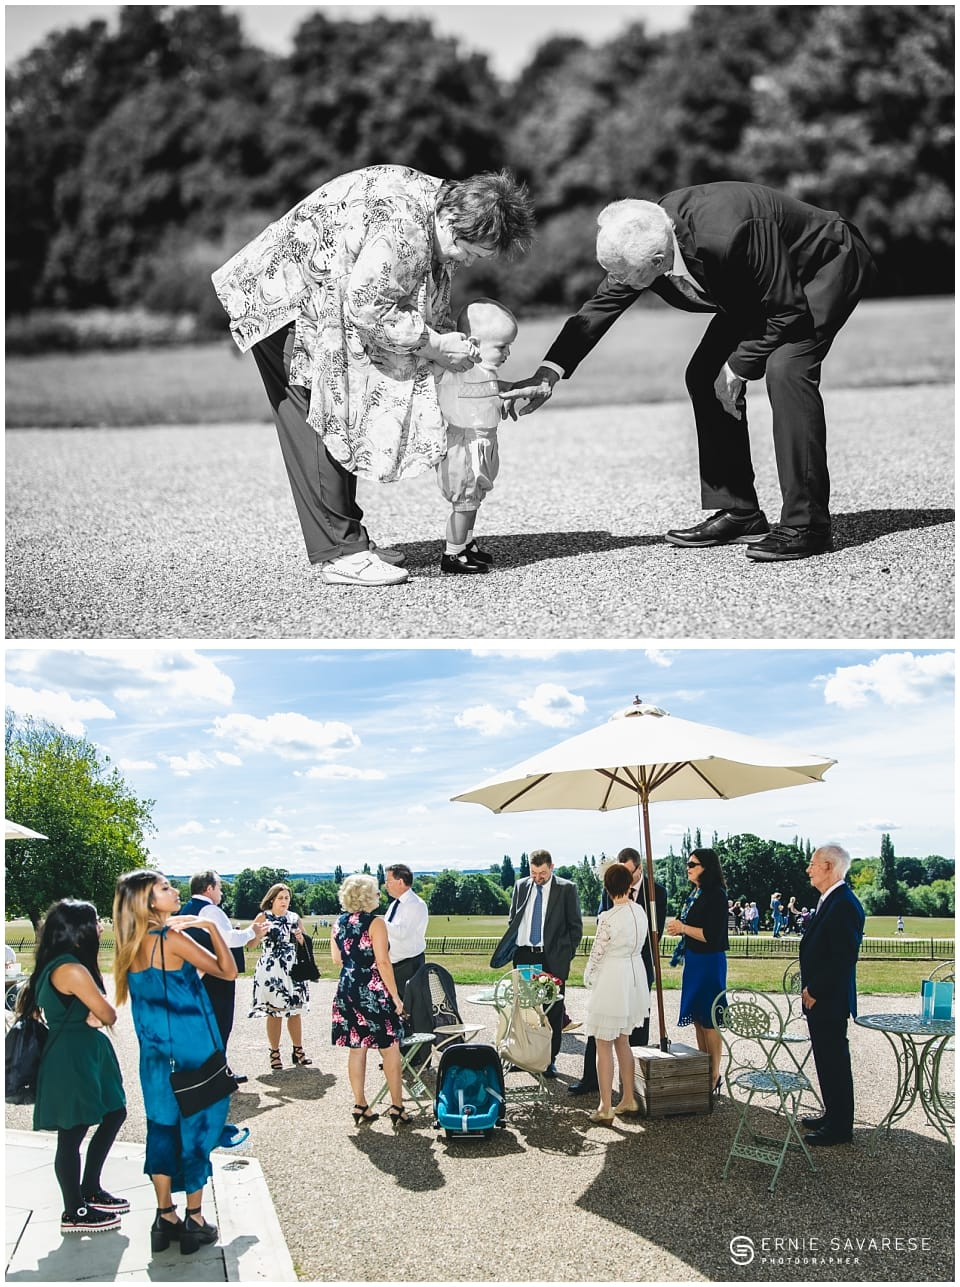 Danson House Wedding Photographer Bexley Bexleyheath 4